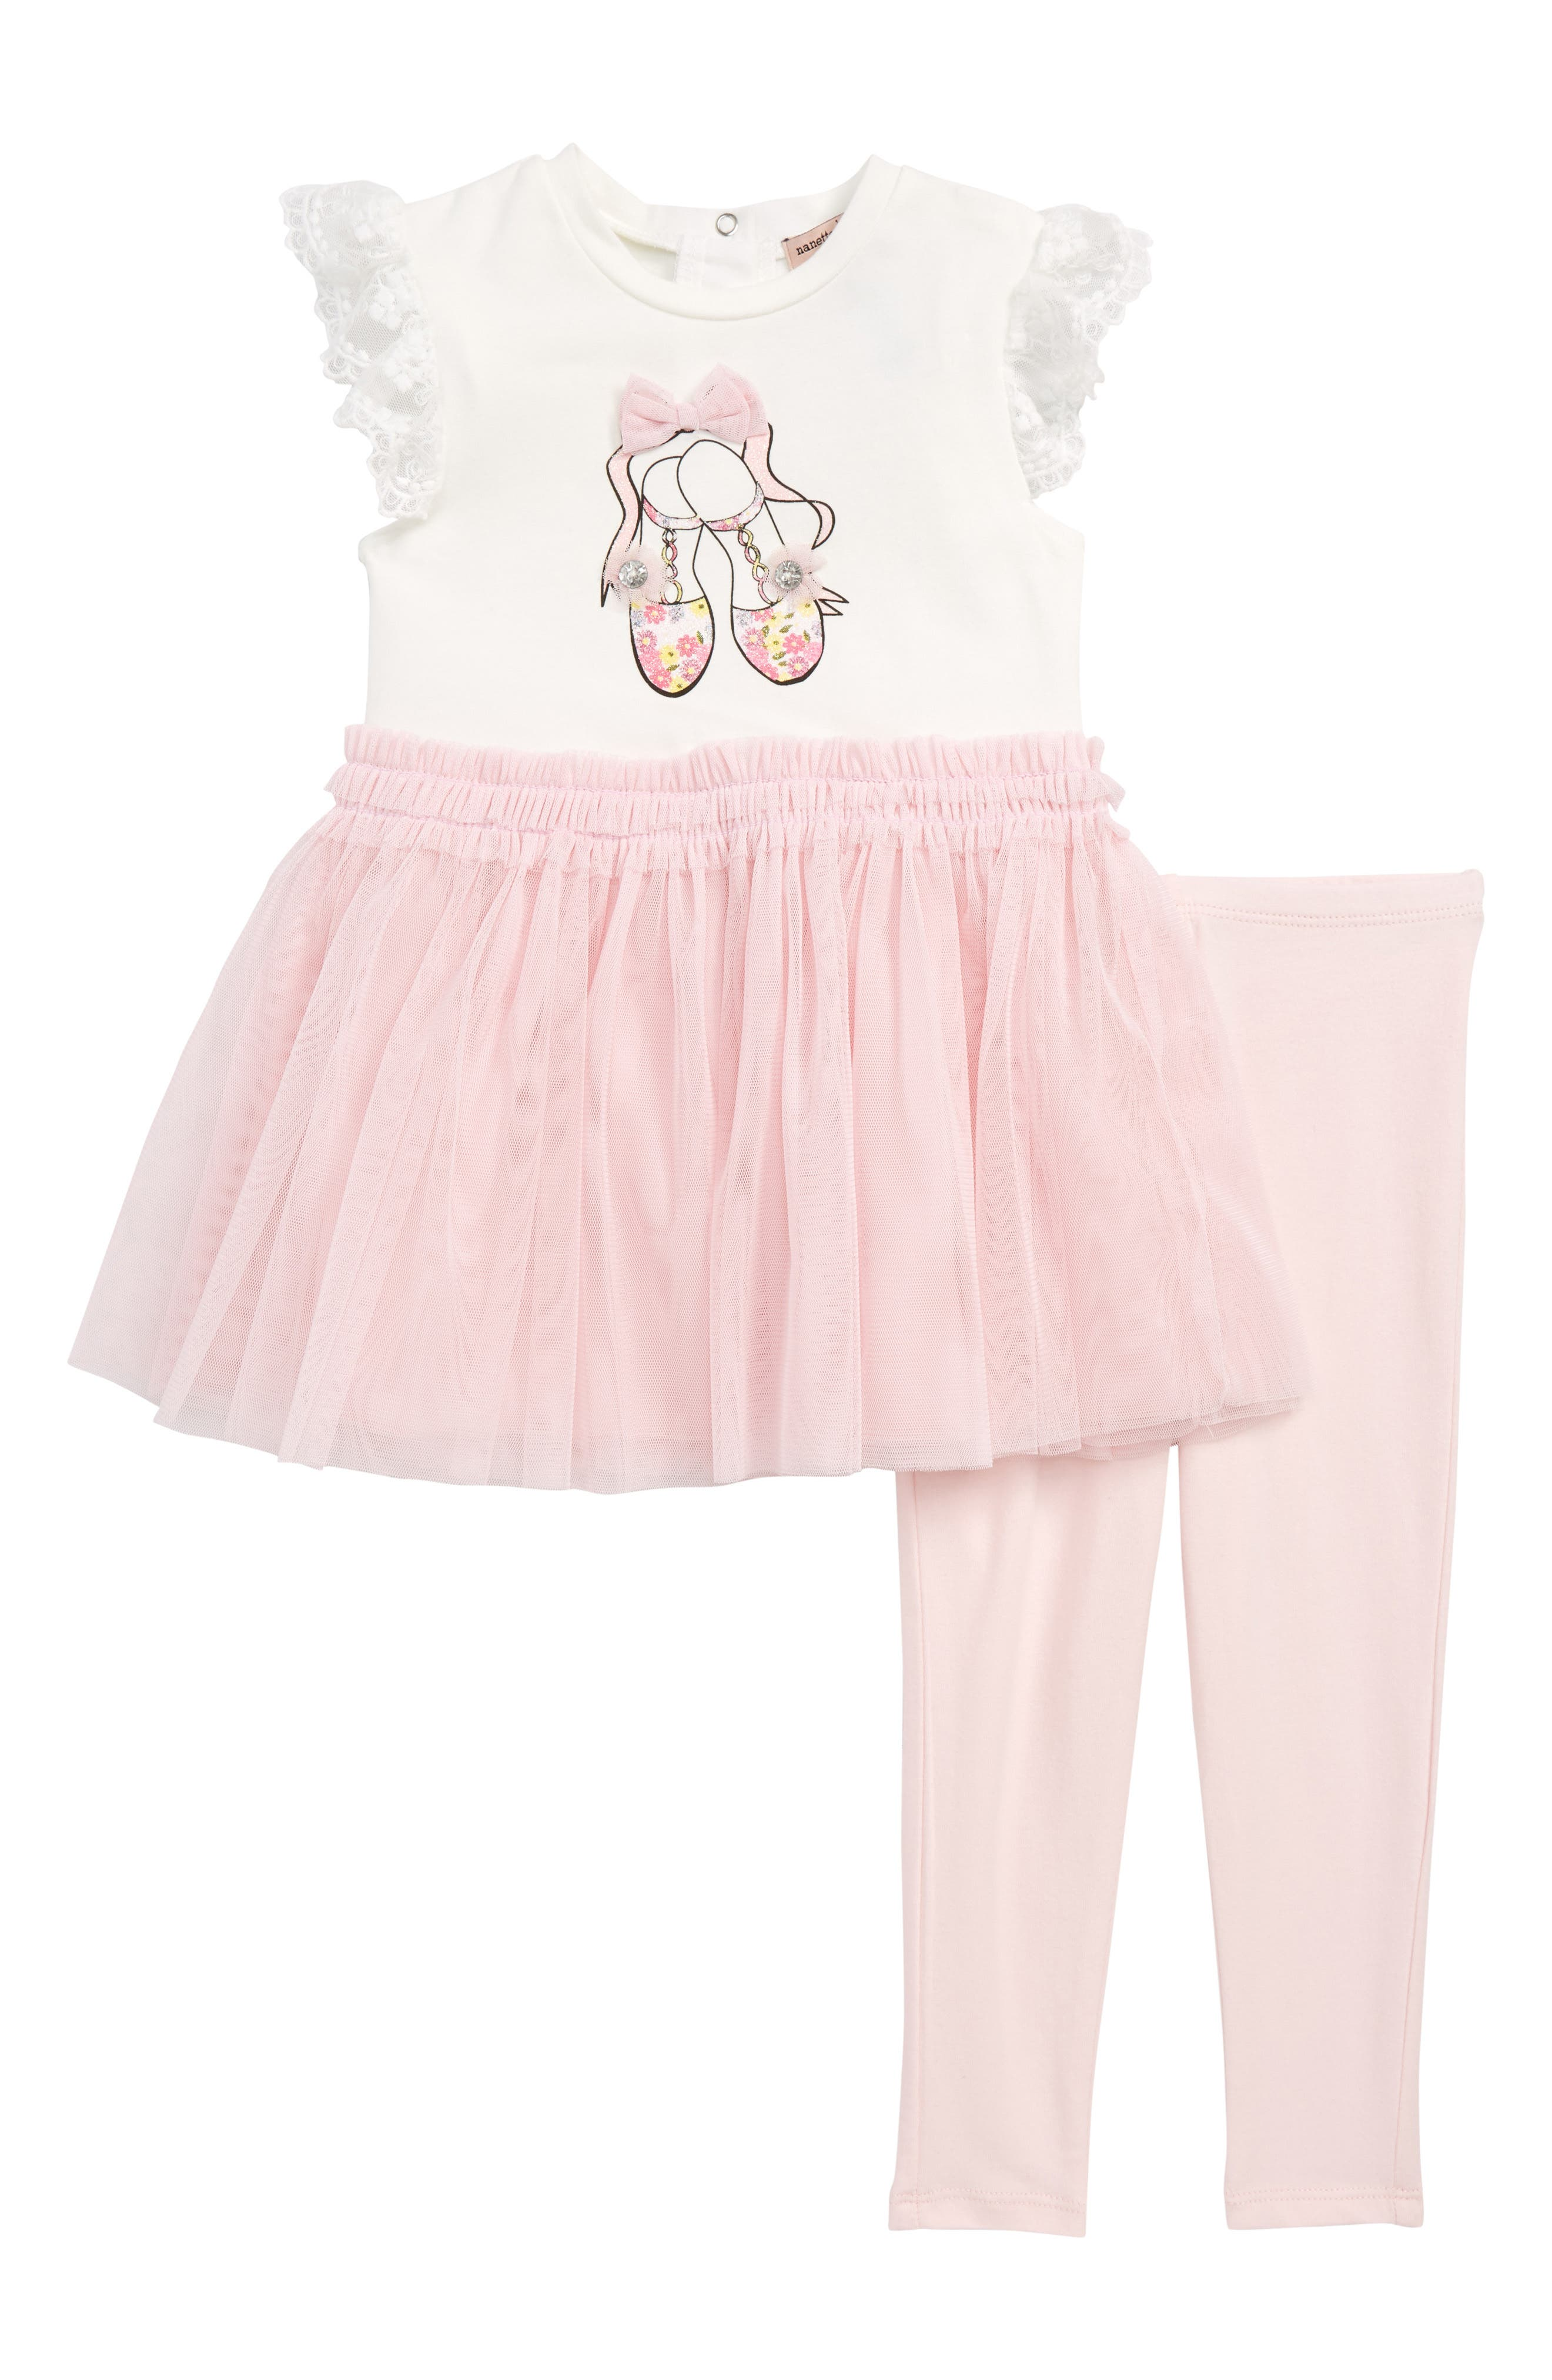 Ballet Slipper Dress & Leggings Set,                             Main thumbnail 1, color,                             900